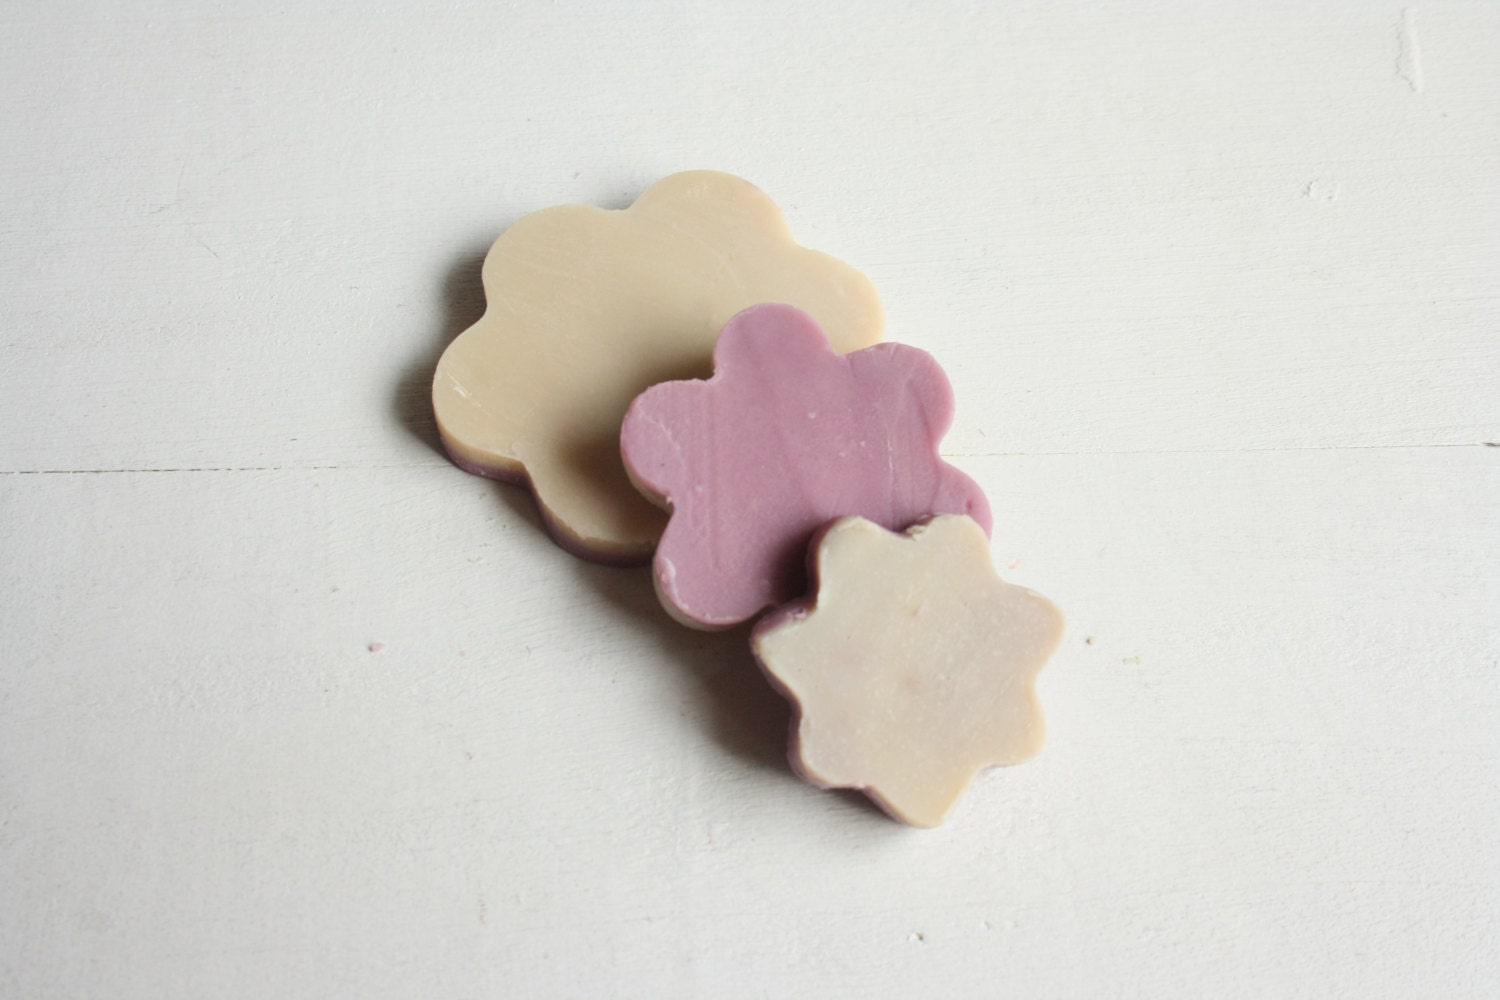 Flower Wedding Favour Sample / Party Favor Flower Shaped mini soap / Baby Shower Favor Soap in organza or tulle pouch. - NaturalBeautyLine